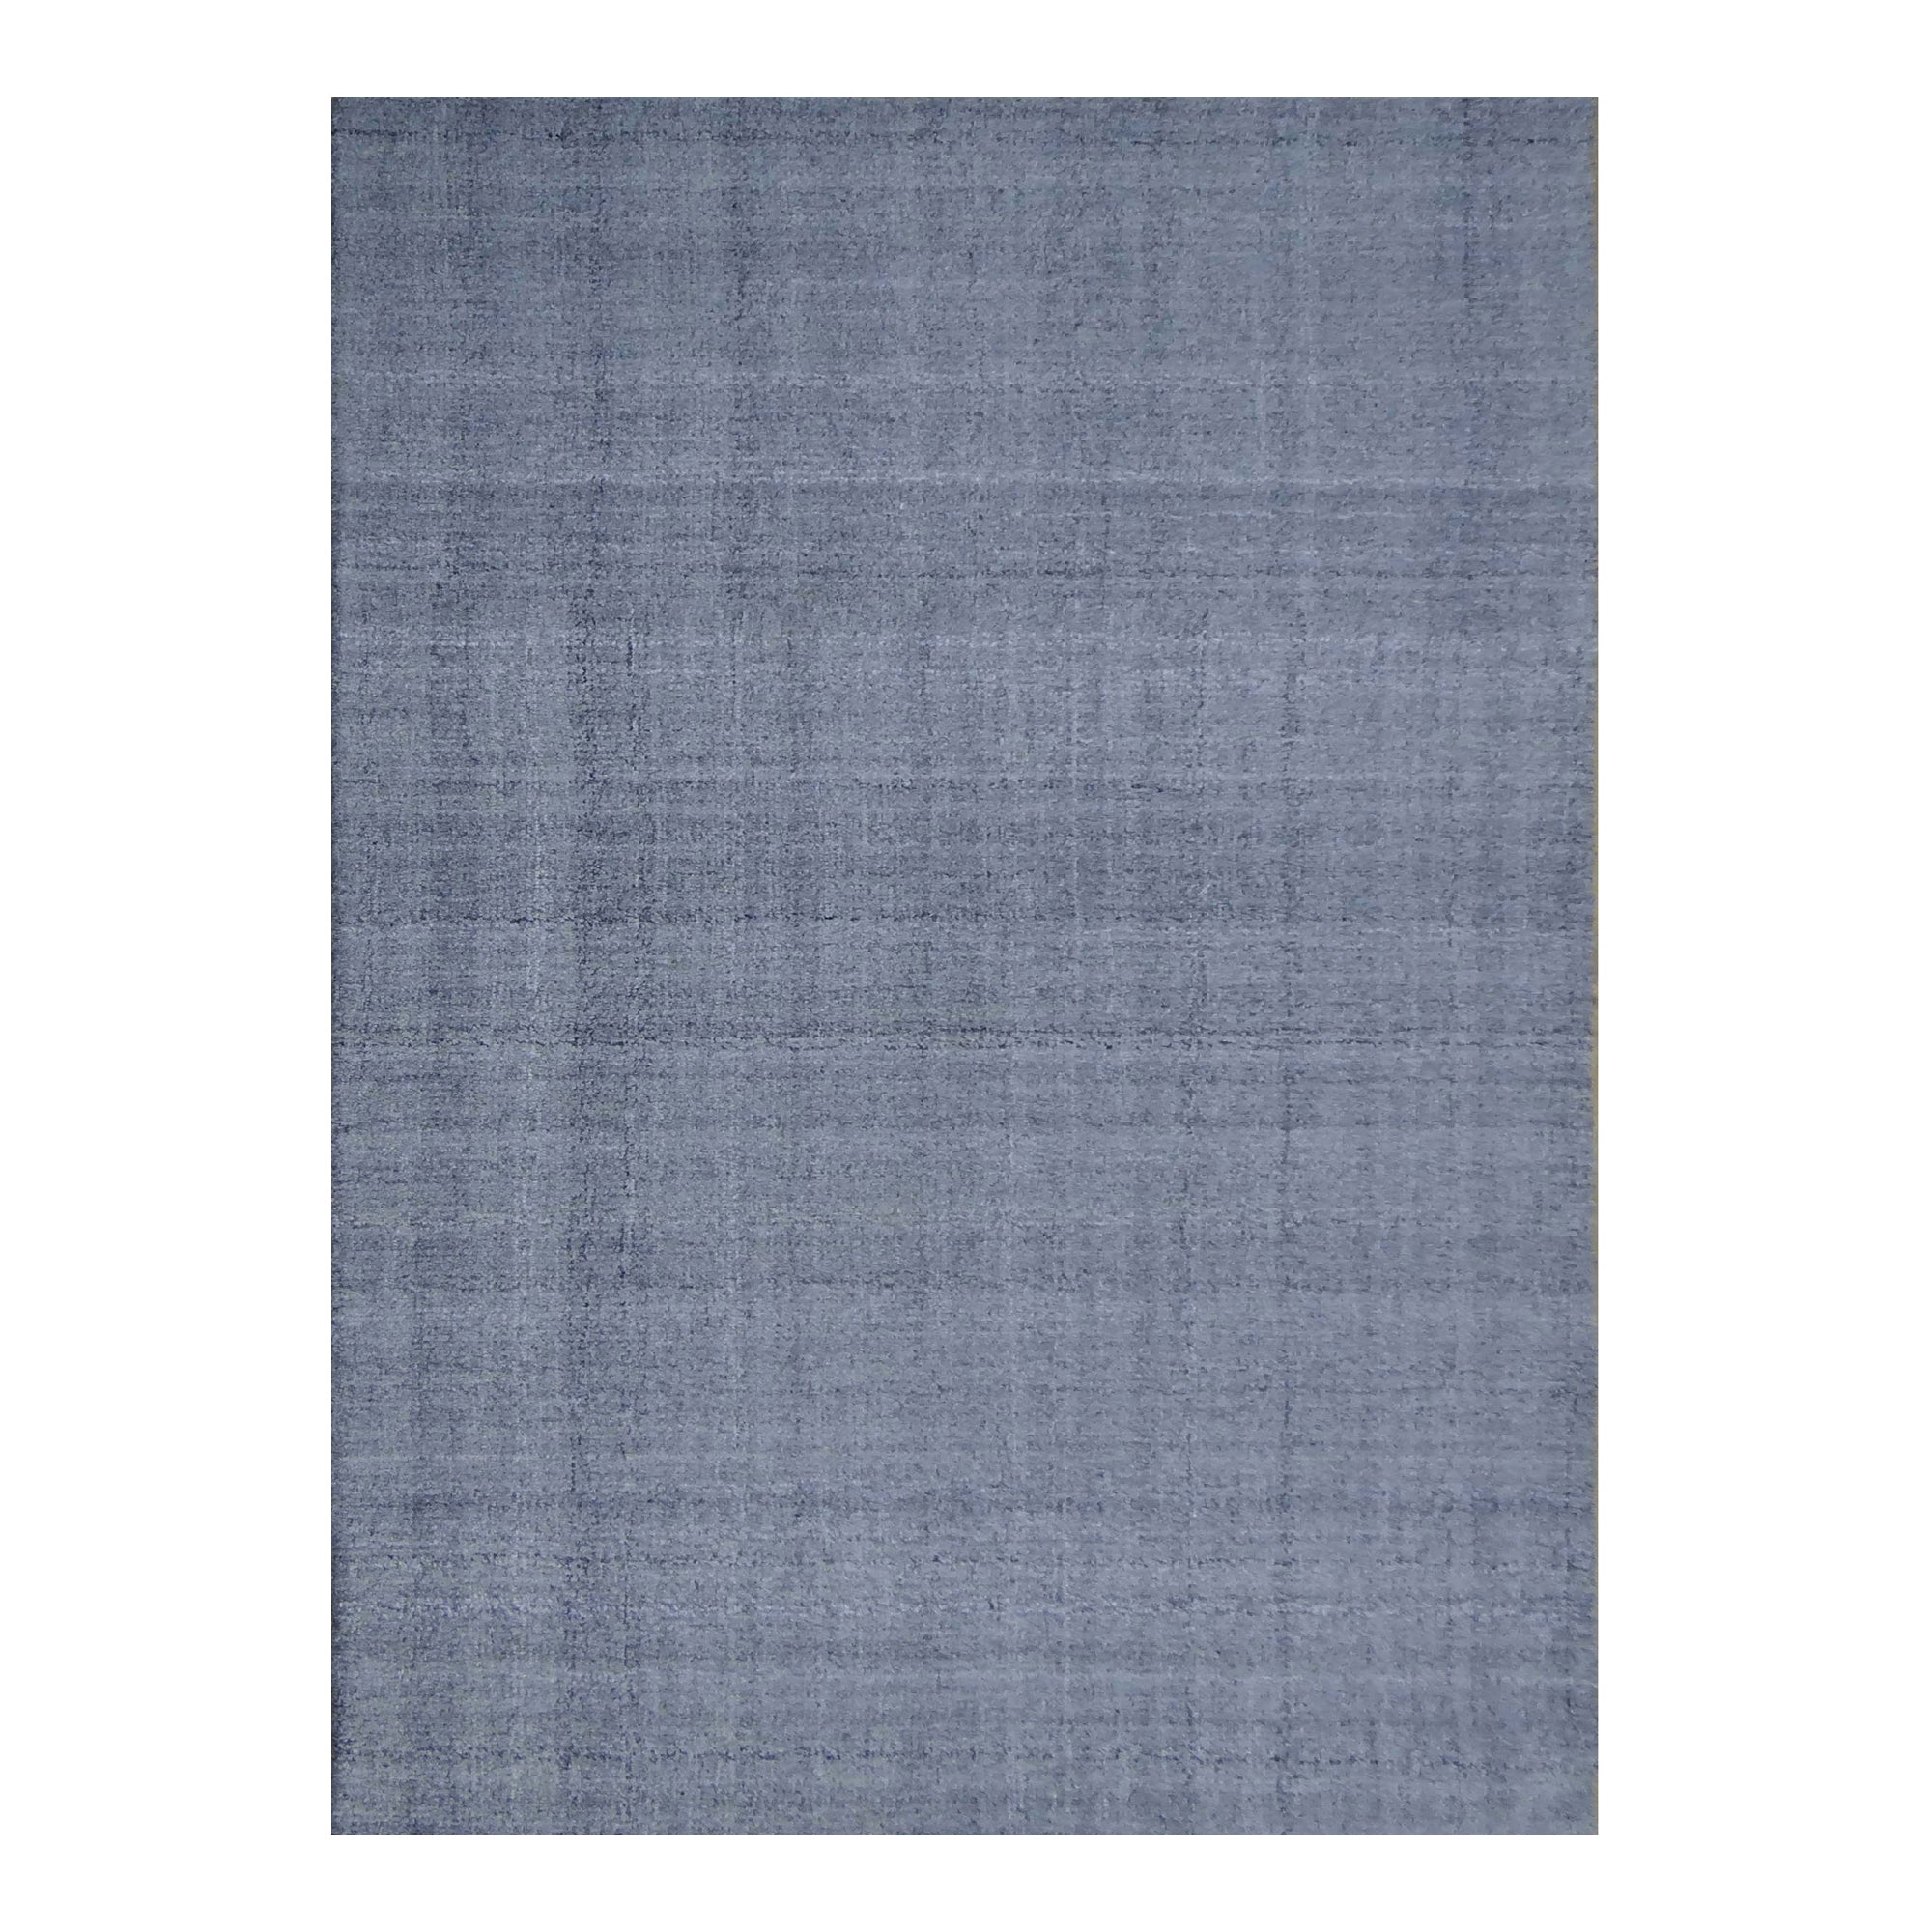 HABANERO RUG 5X8, Grey - Tops-Dress